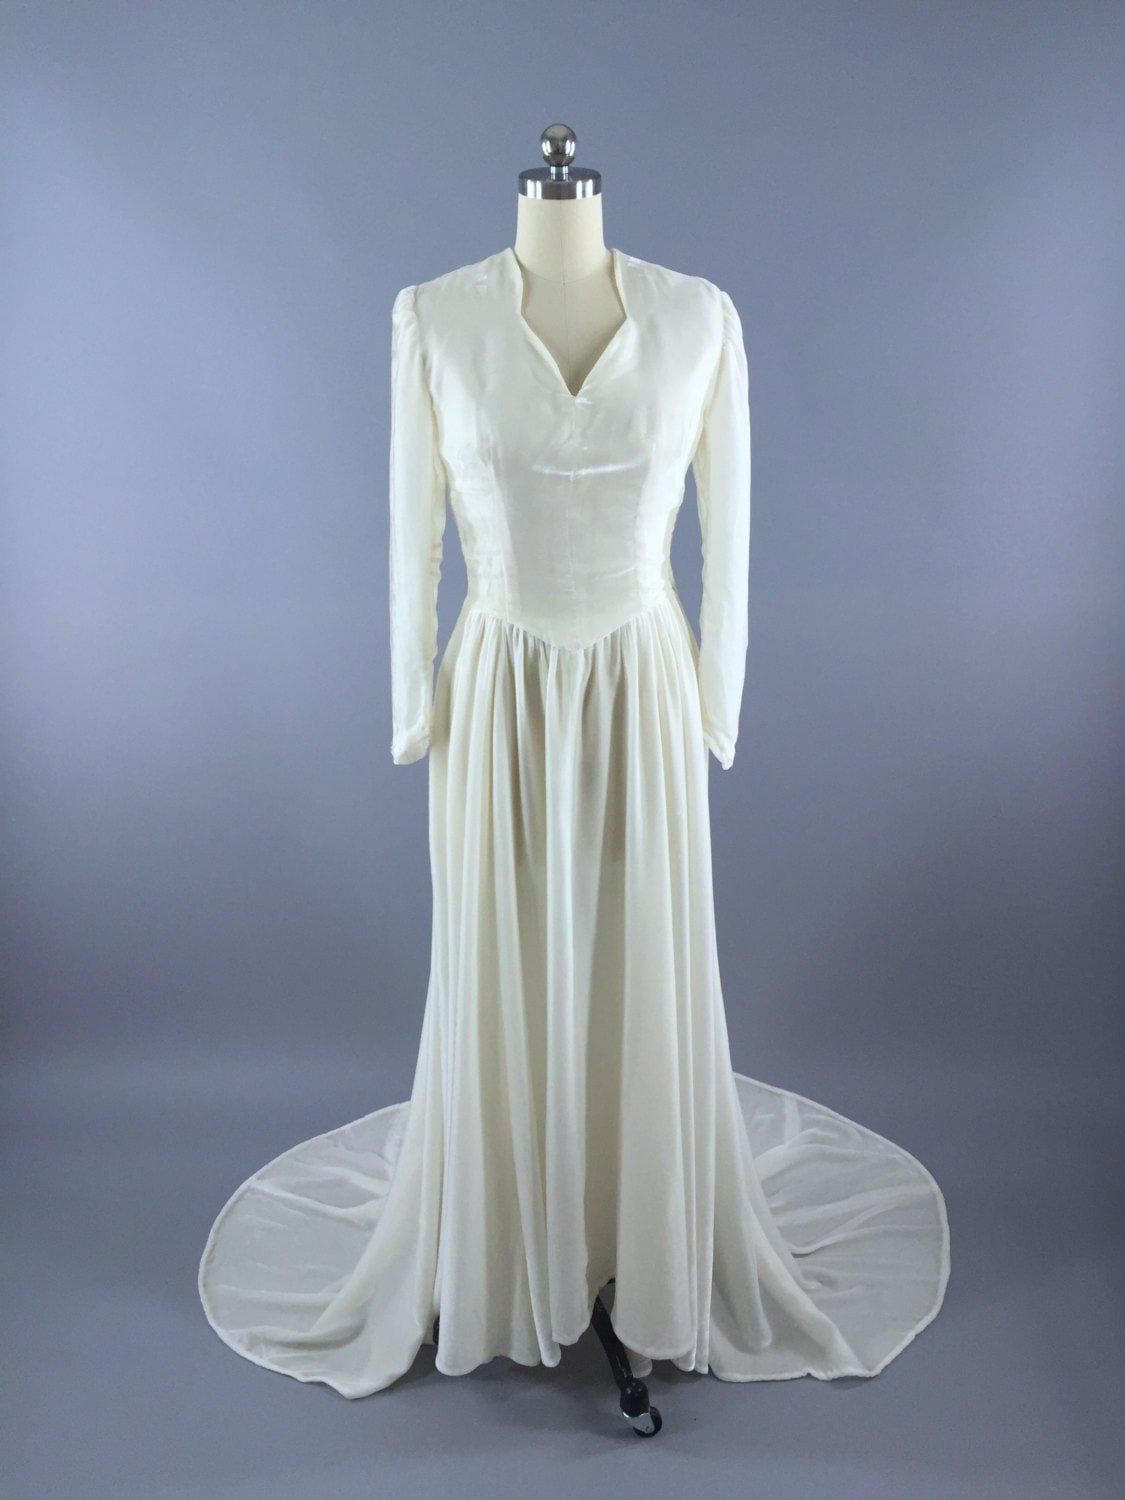 Vintage 1930s Wedding Dress / 1940s Winter White Ivory Silk Velvet Bridal Gown Dress ThisBlueBird